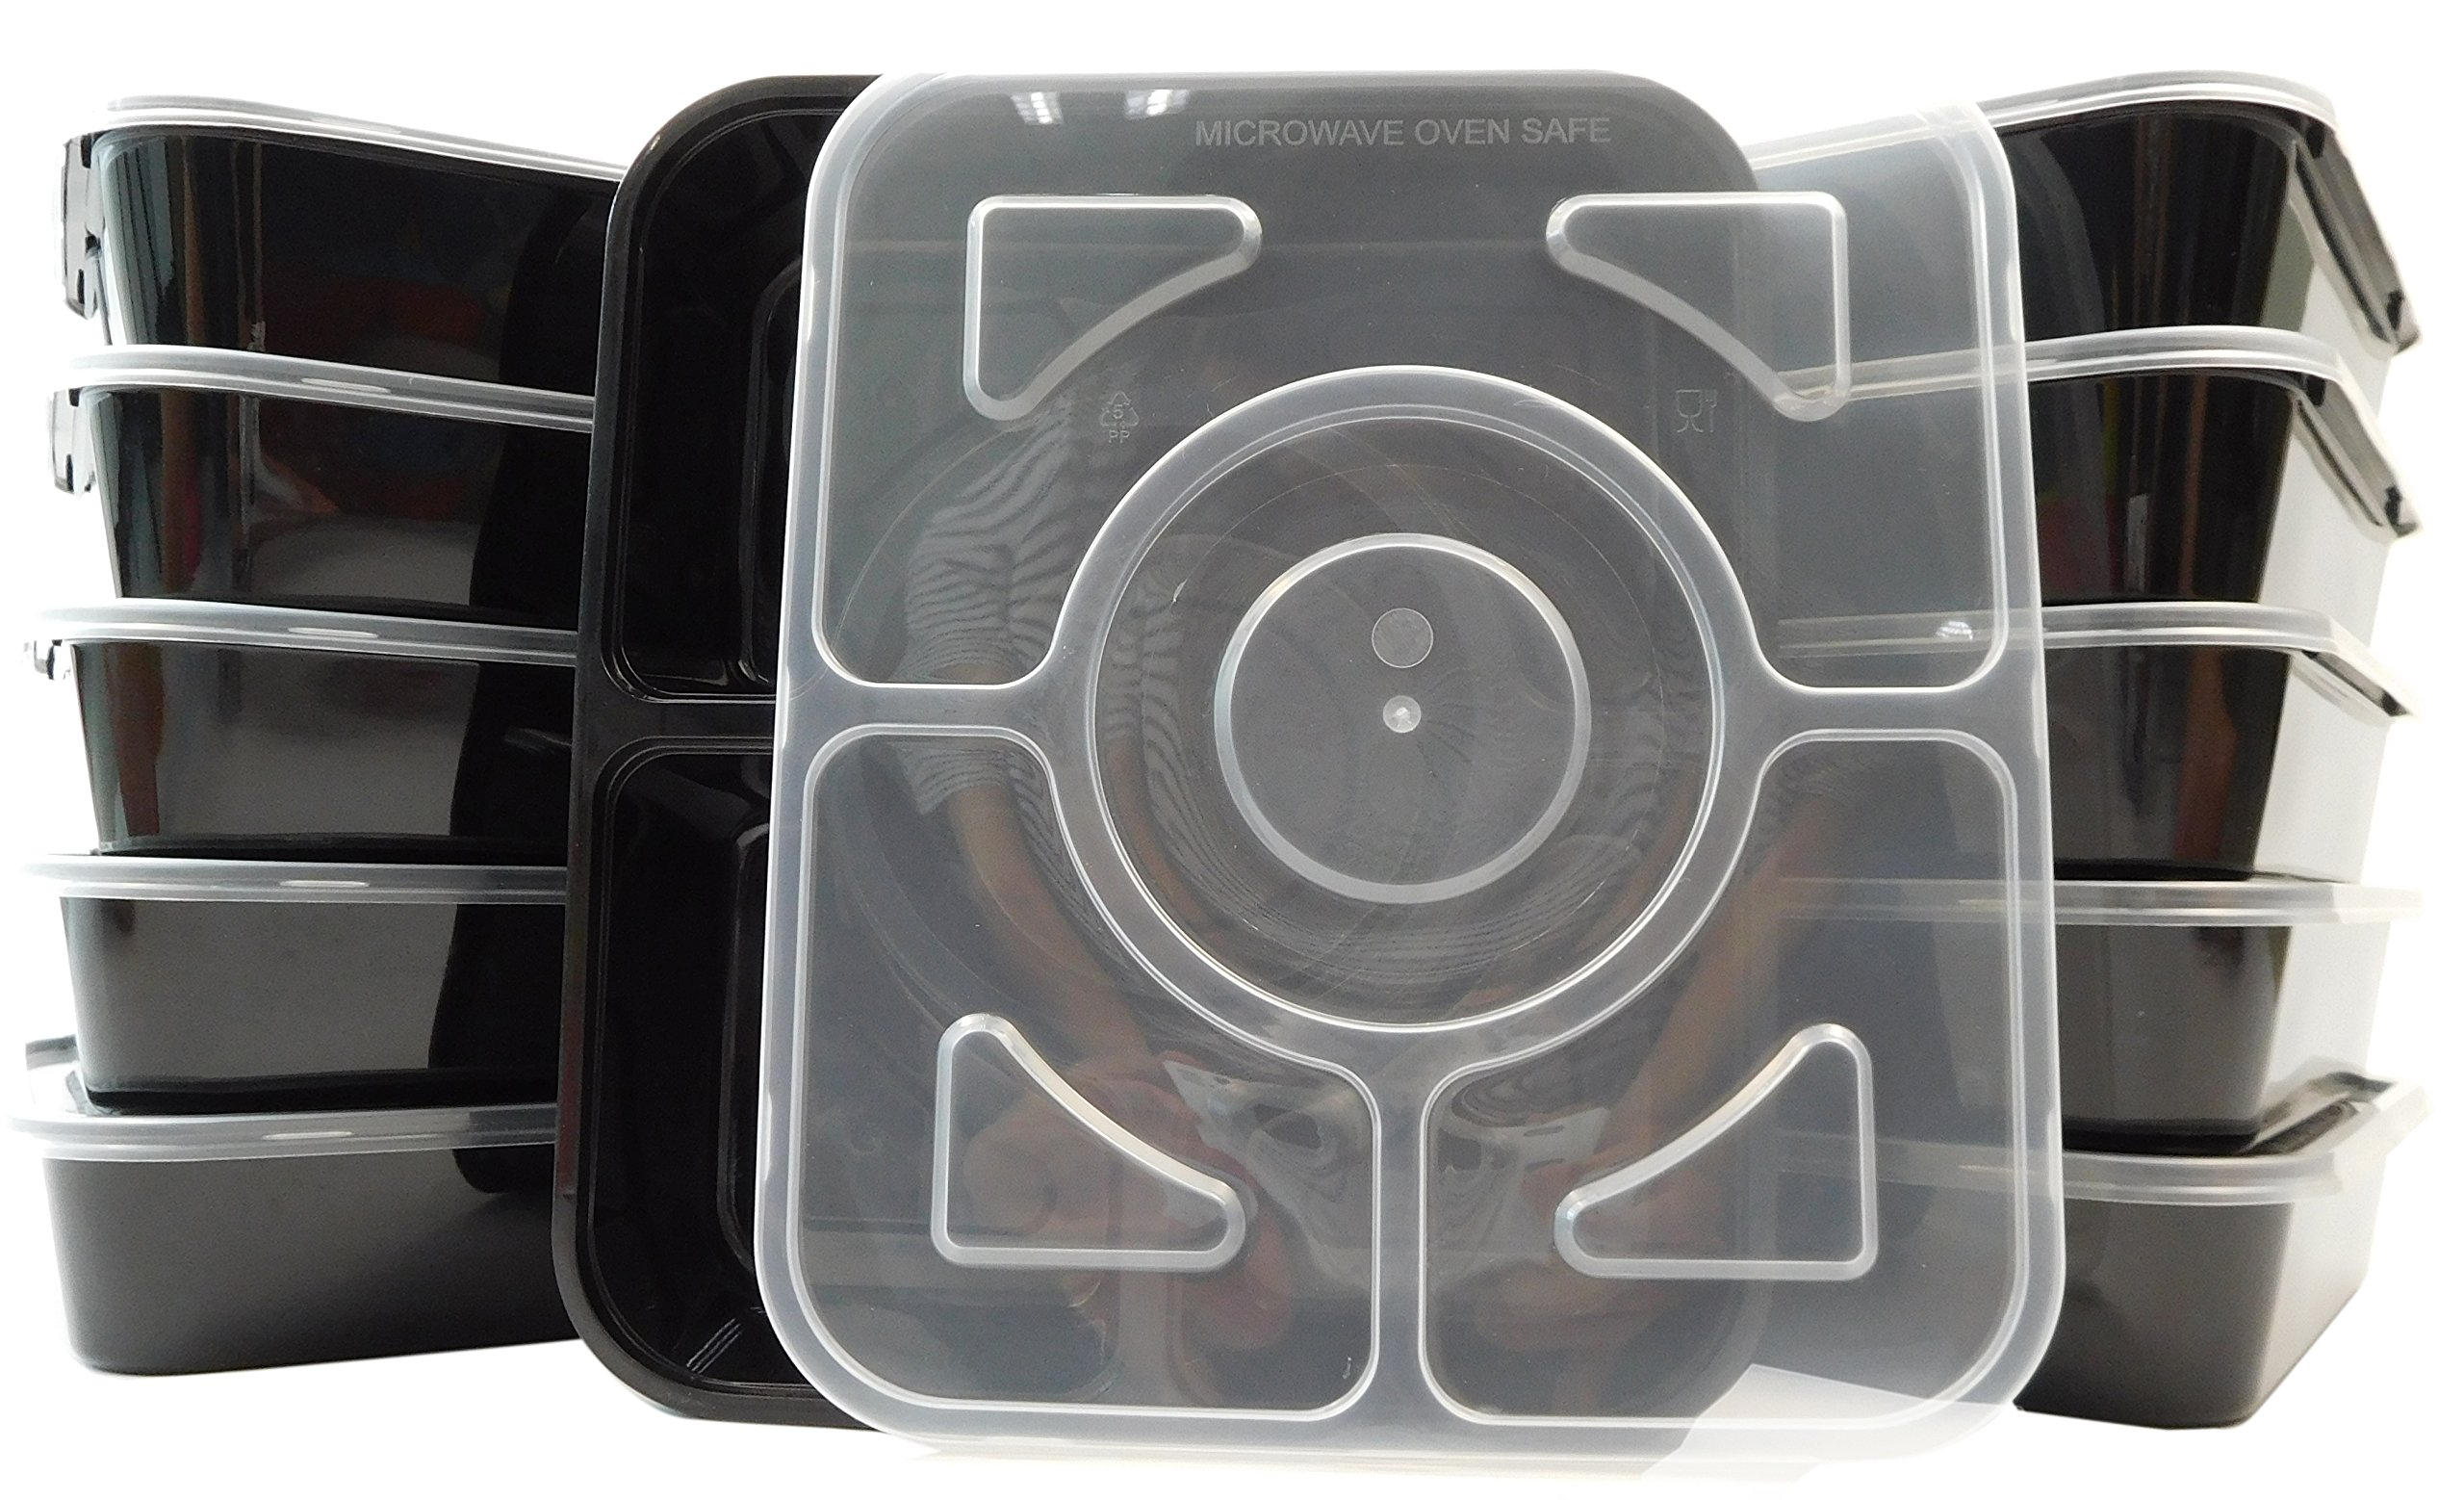 Table To Go 300-Pack Bento Lunch Boxes with Lids (4 Compartment/ 36 oz) | Microwaveable, Dishwasher & Freezer Safe Meal Prep Containers | Reusable Dish Set for Prepping, Portion Control & More (Black)